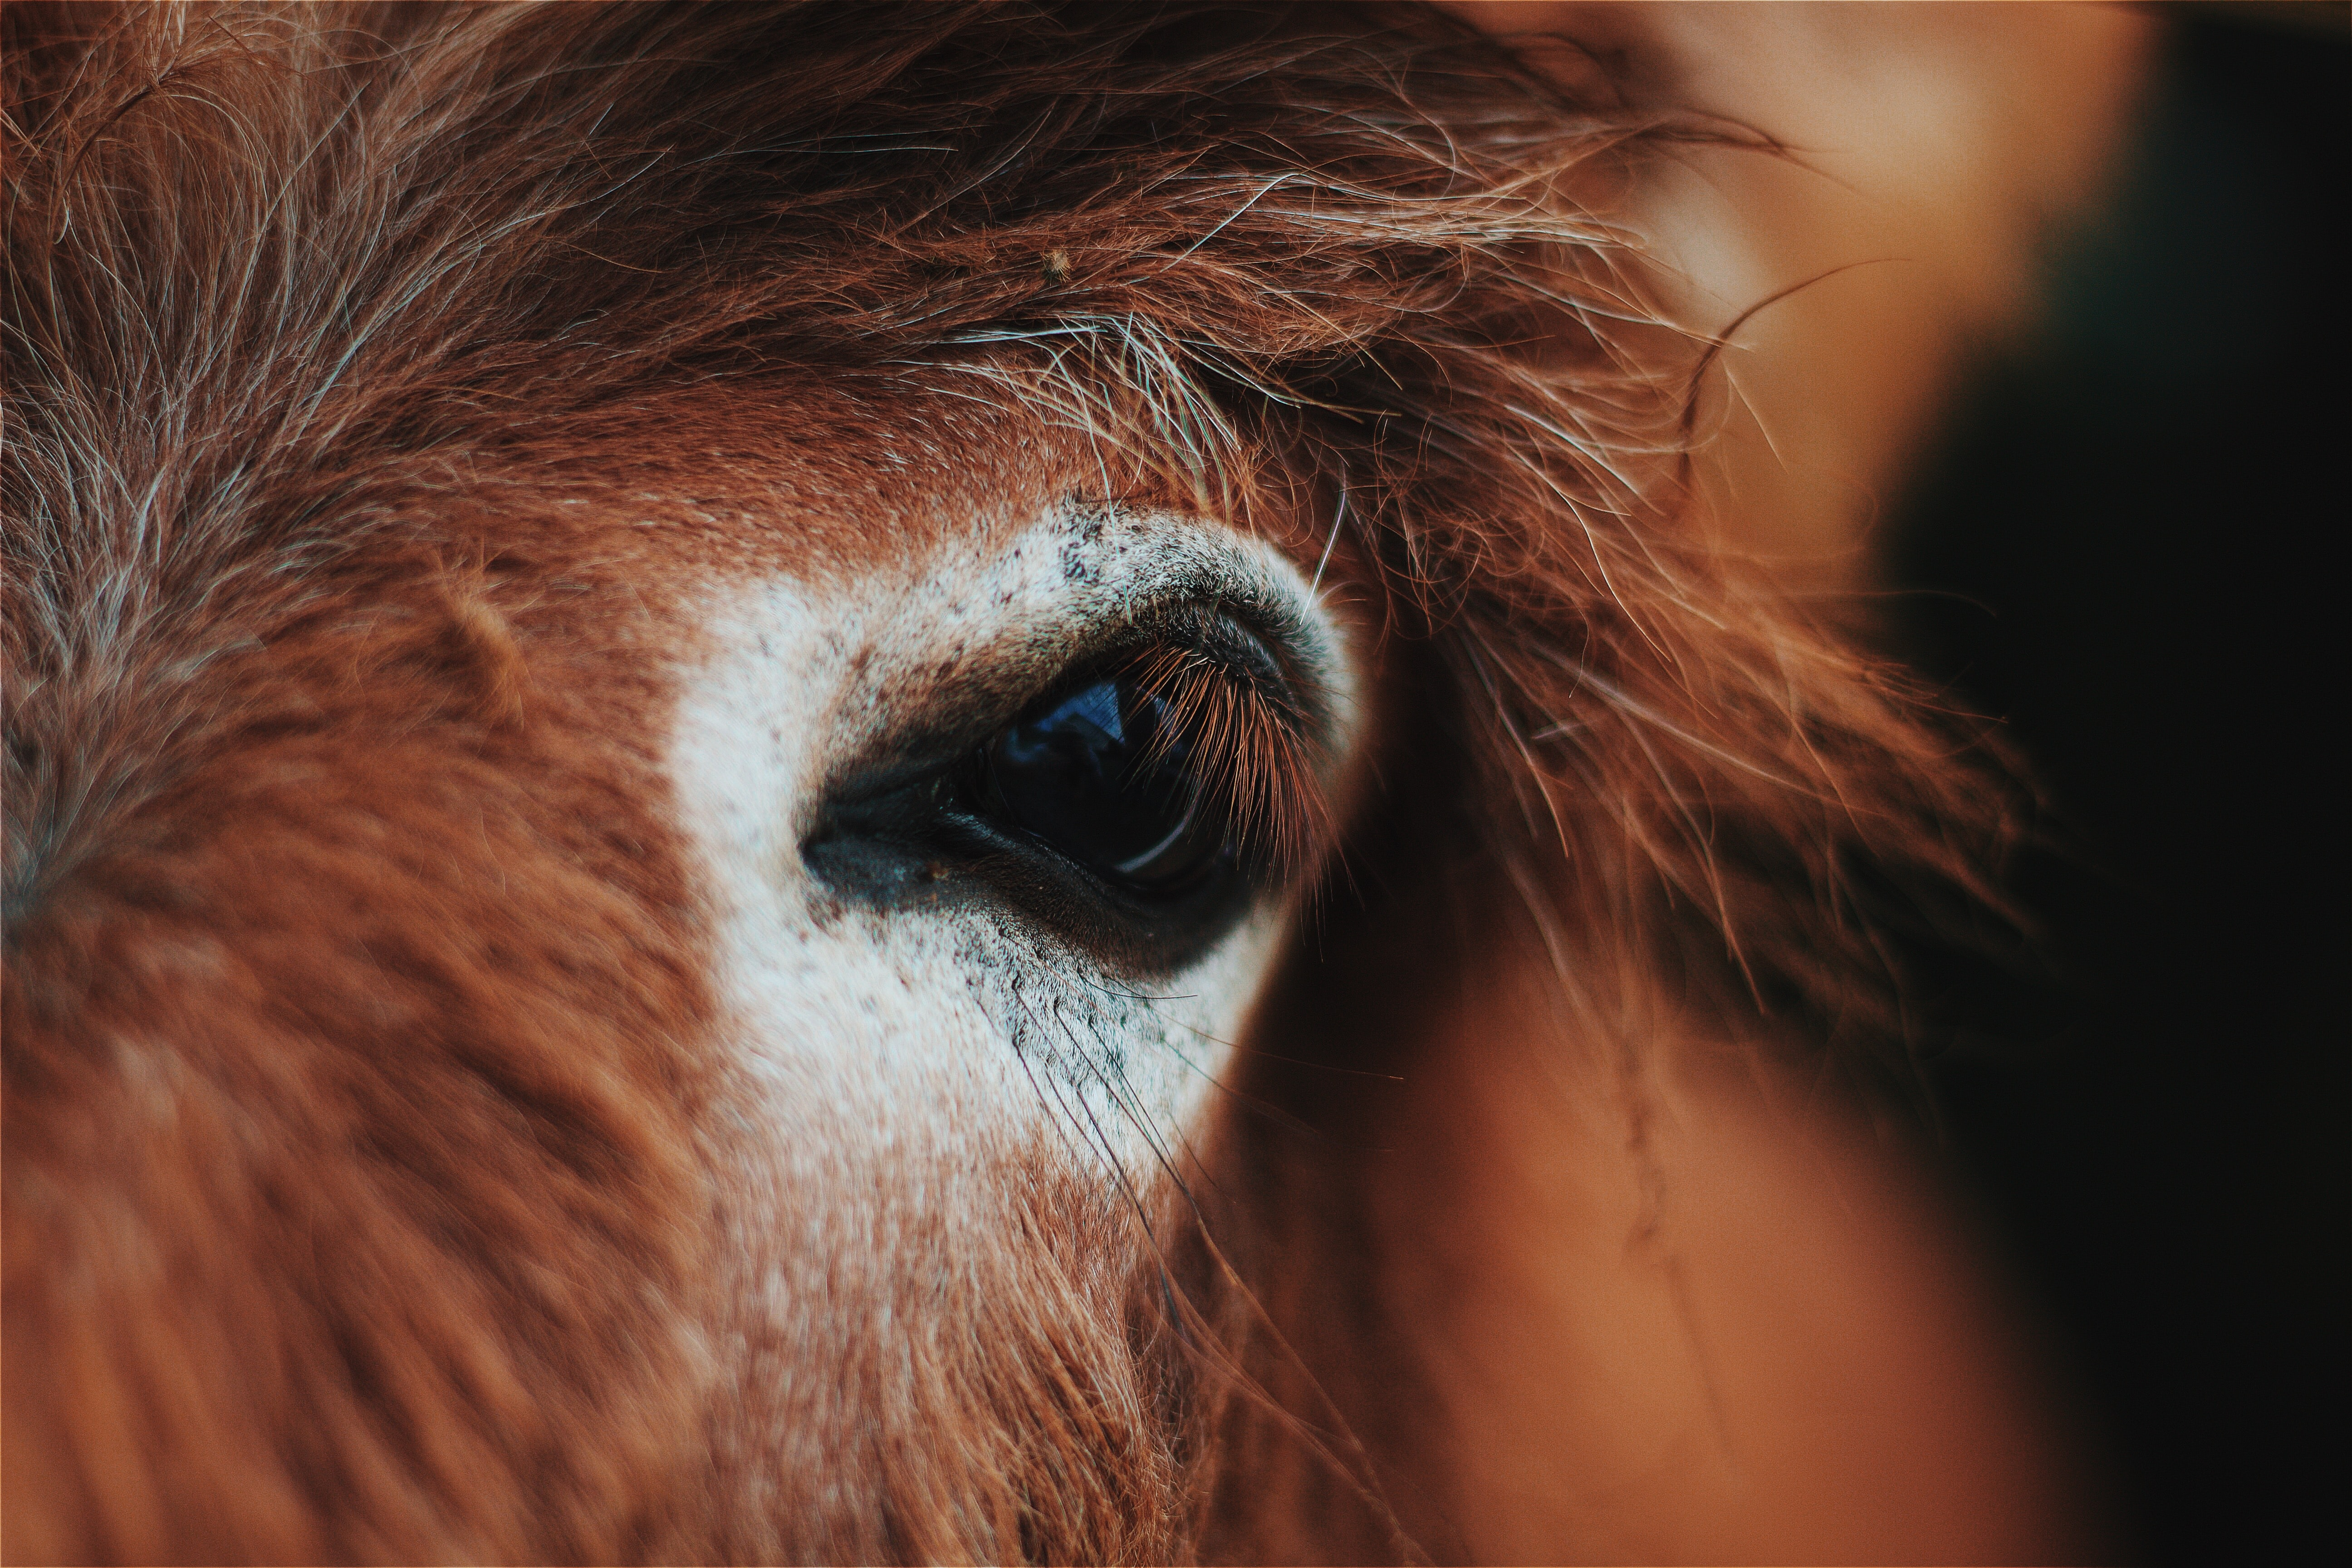 A close-up of a chestnut horse's dark eye